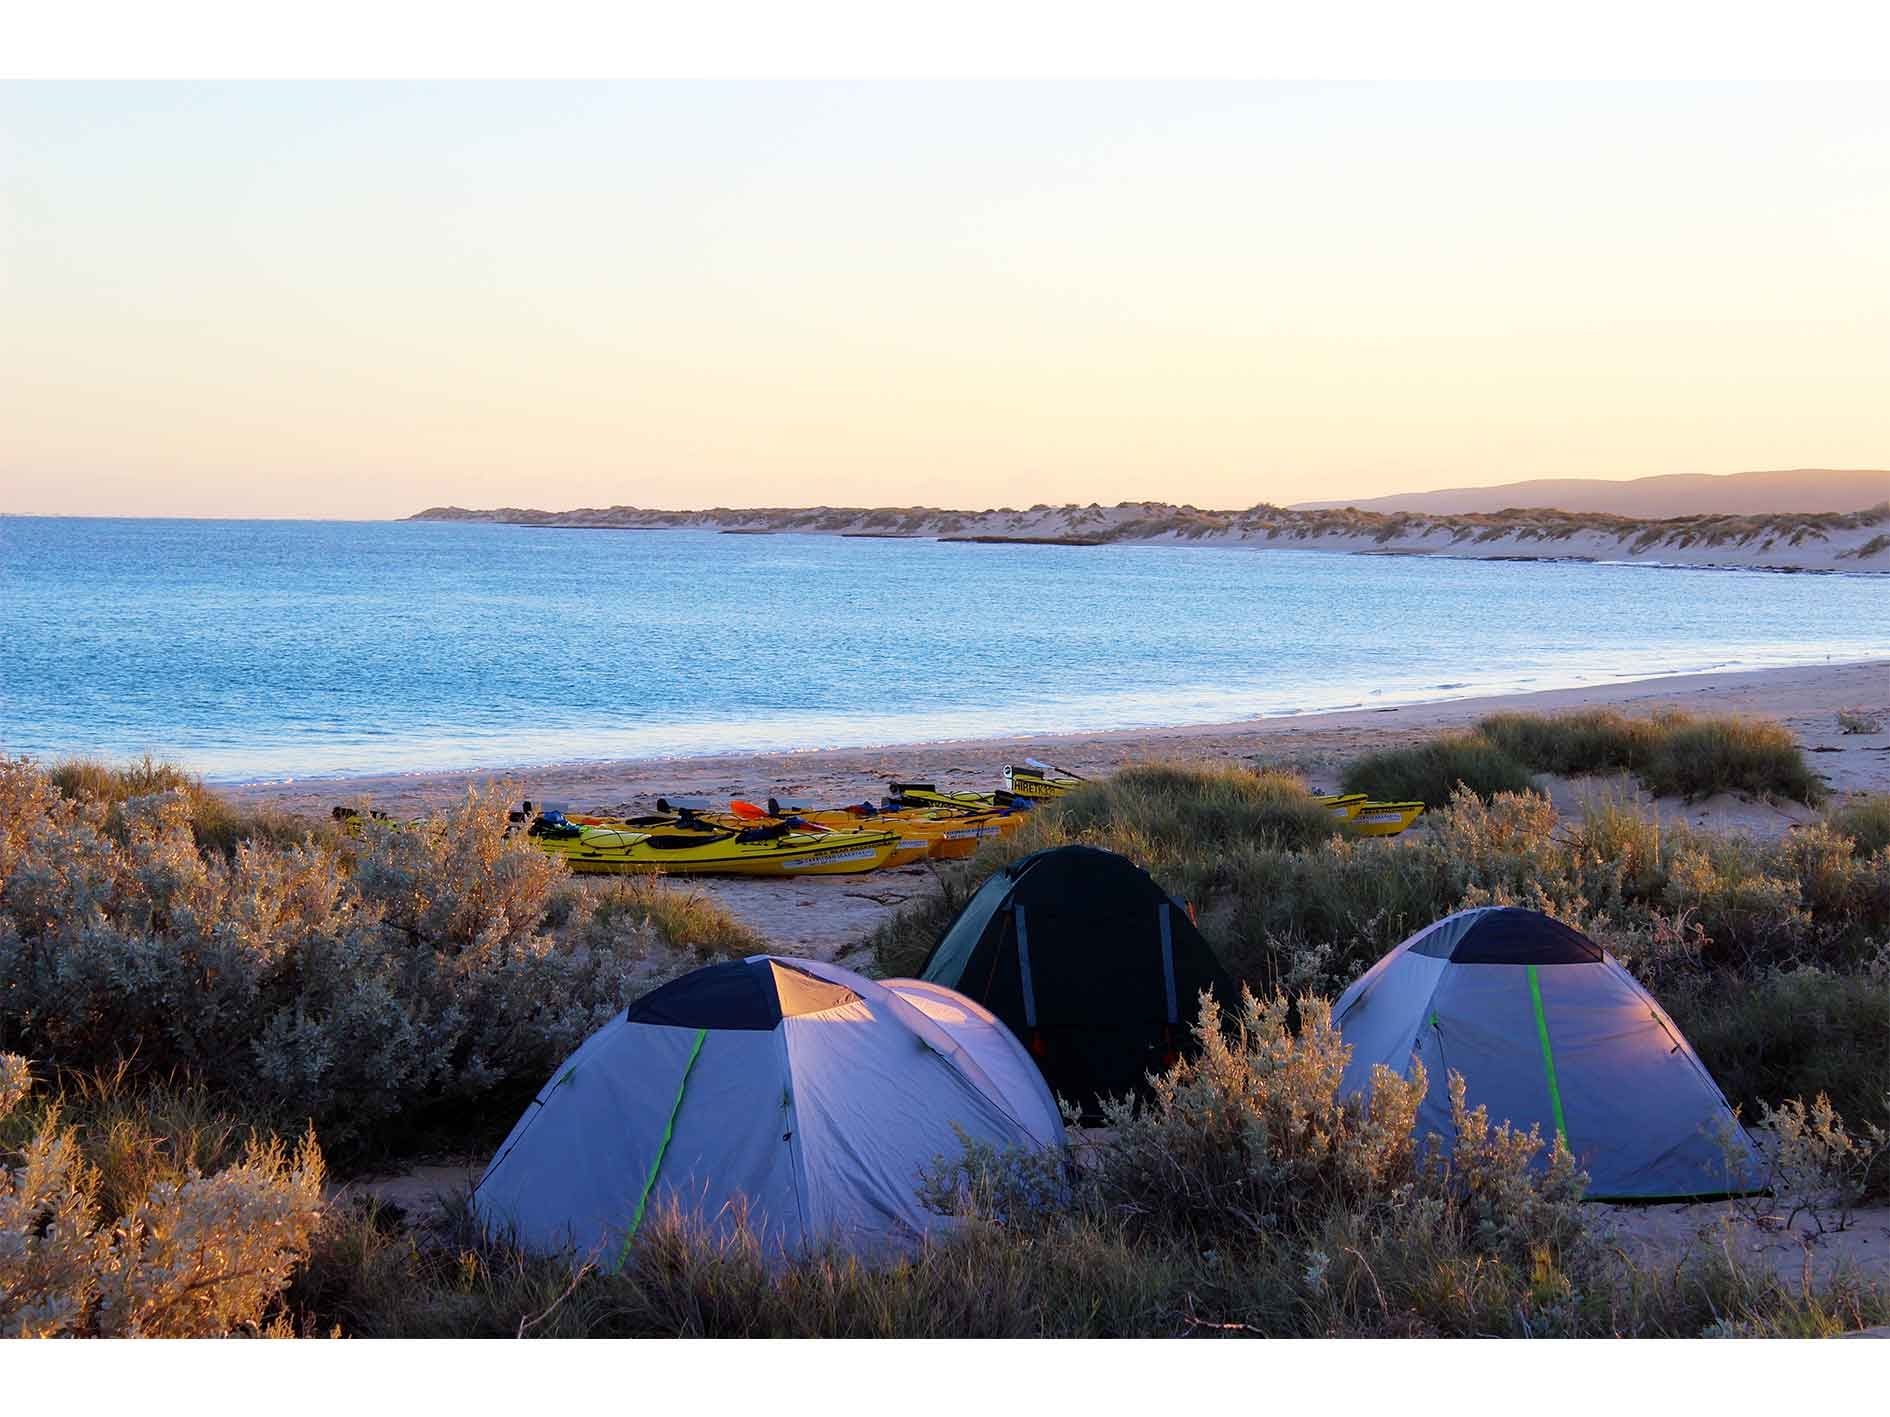 tents and kayaks on a beautiful beach at sunset on Exmouth Adventure Co's 3 day Reef and Beach sea kayaking, snorkelling and beach camping tour, Ningaloo Reef, Exmouth, Western Australia